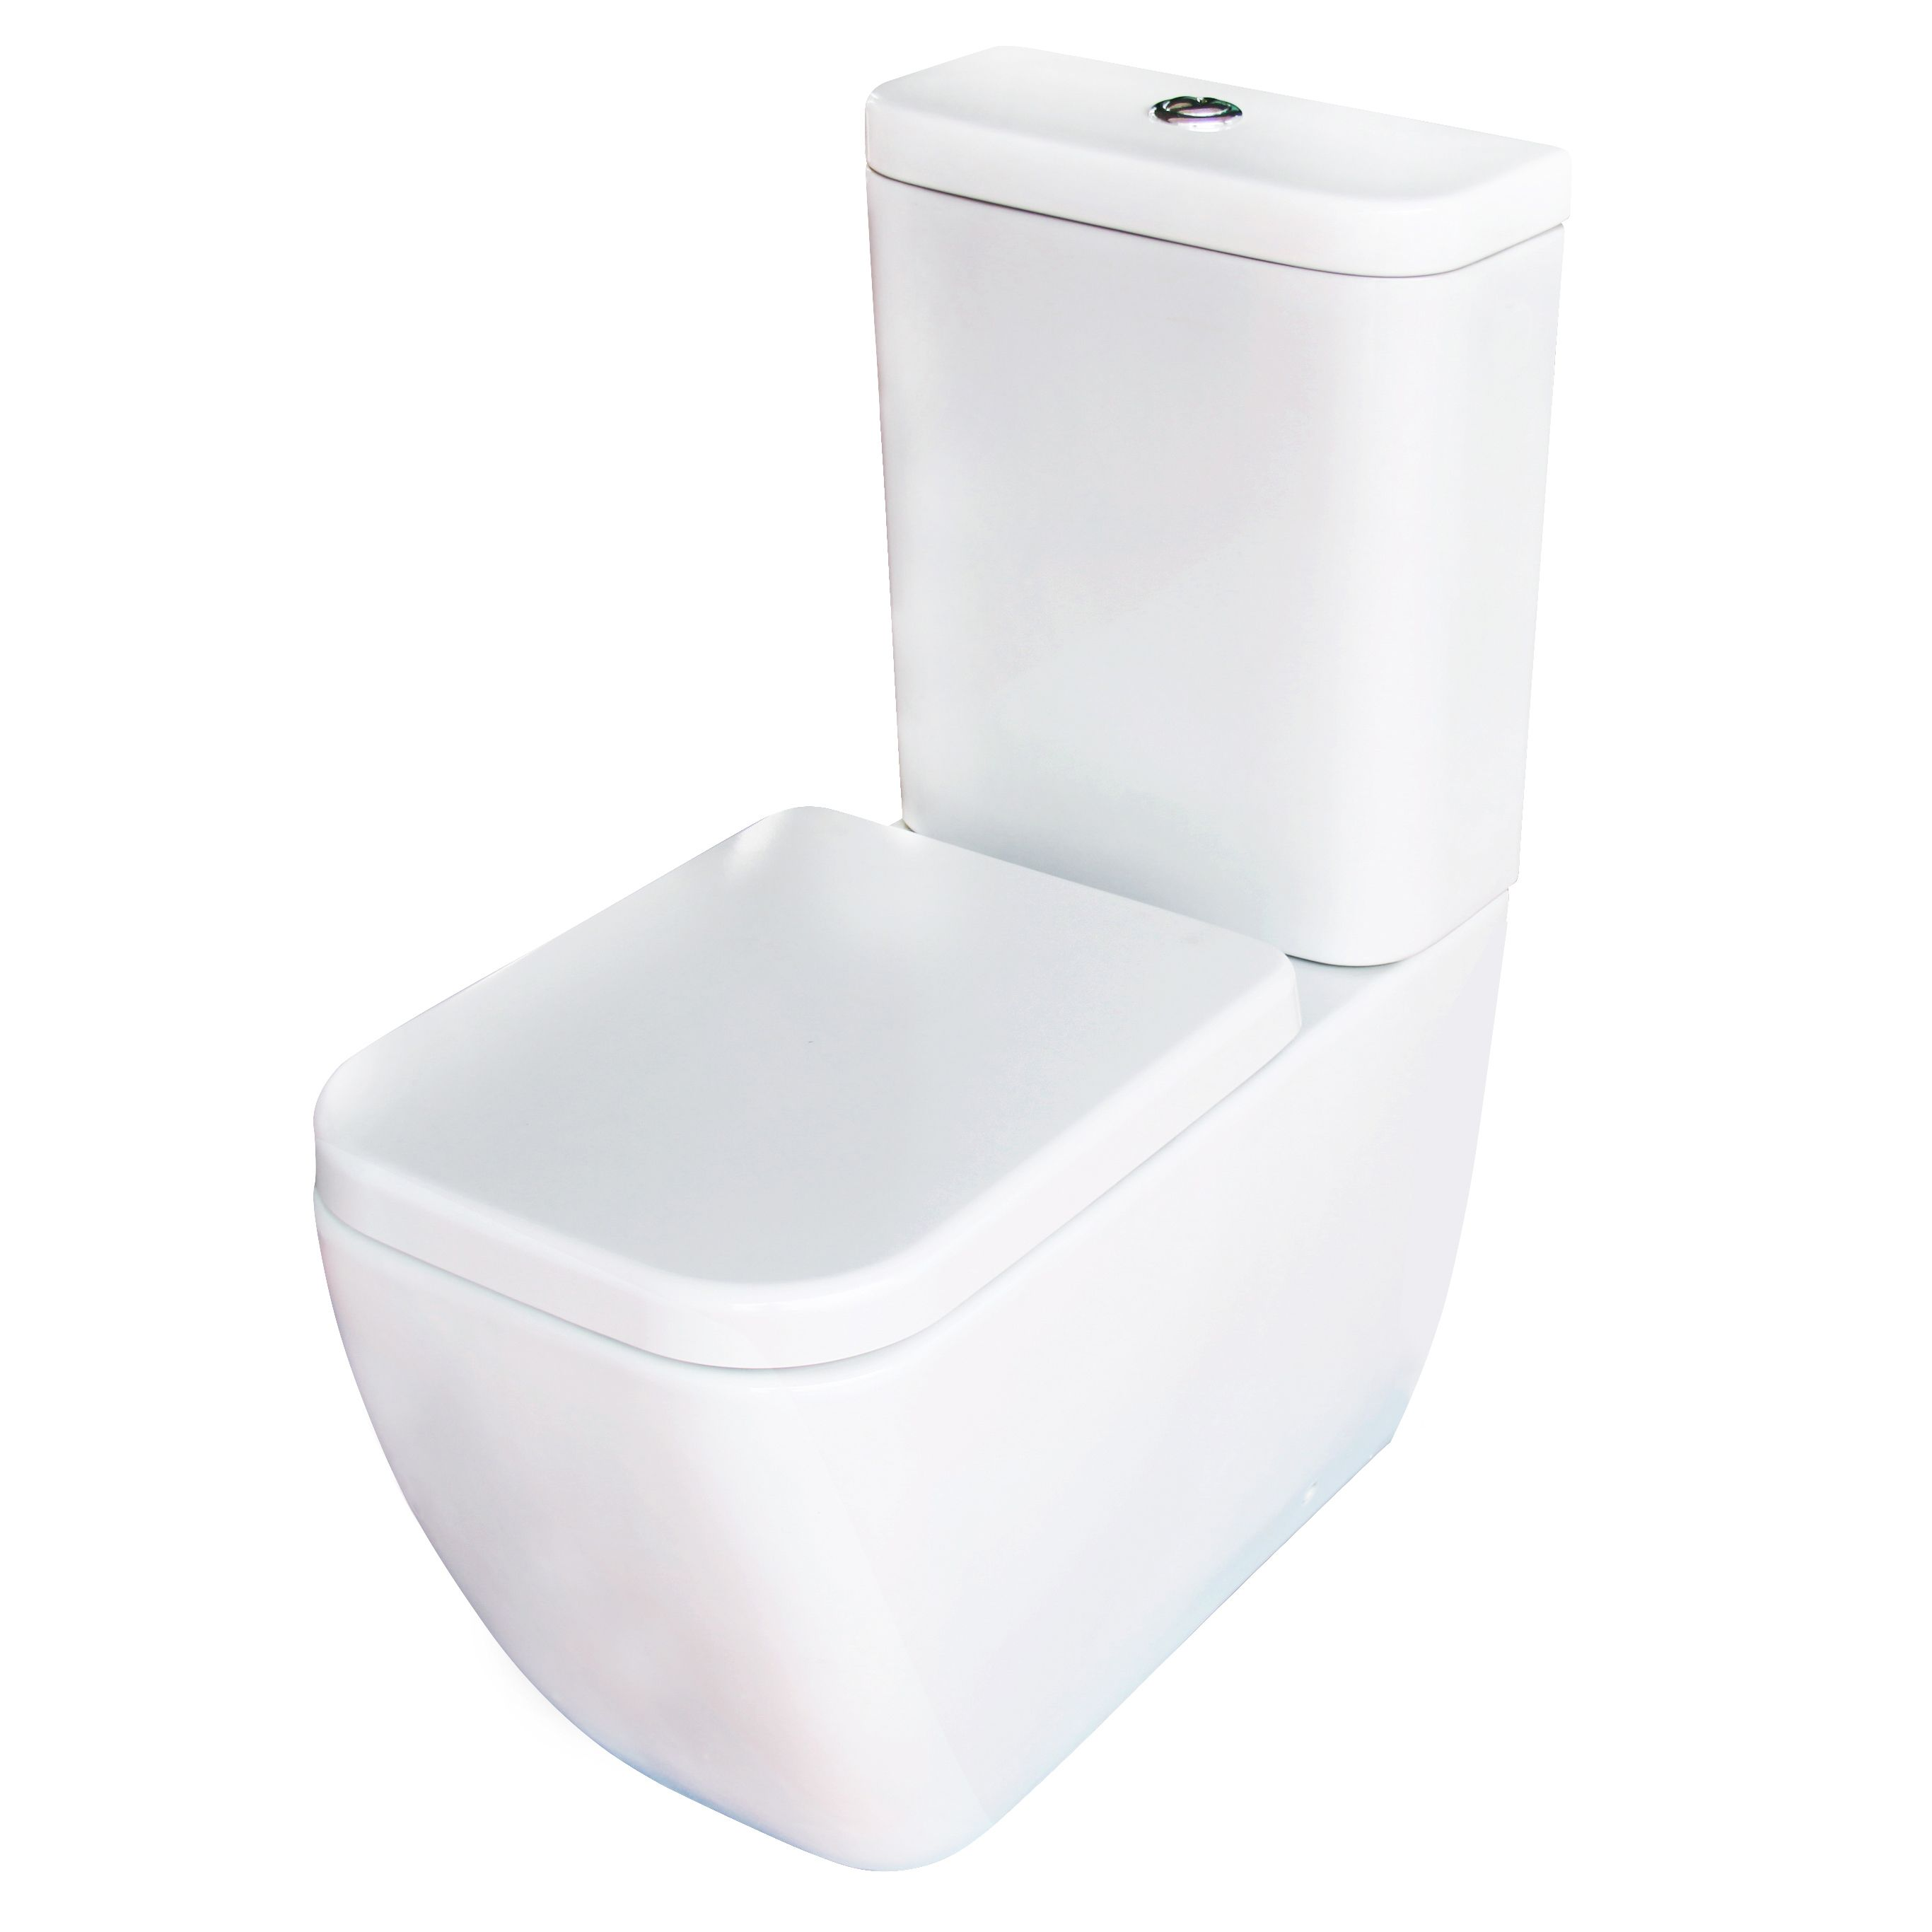 Cooke & Lewis Affini Contemporary Close-Coupled Toilet with Soft ...